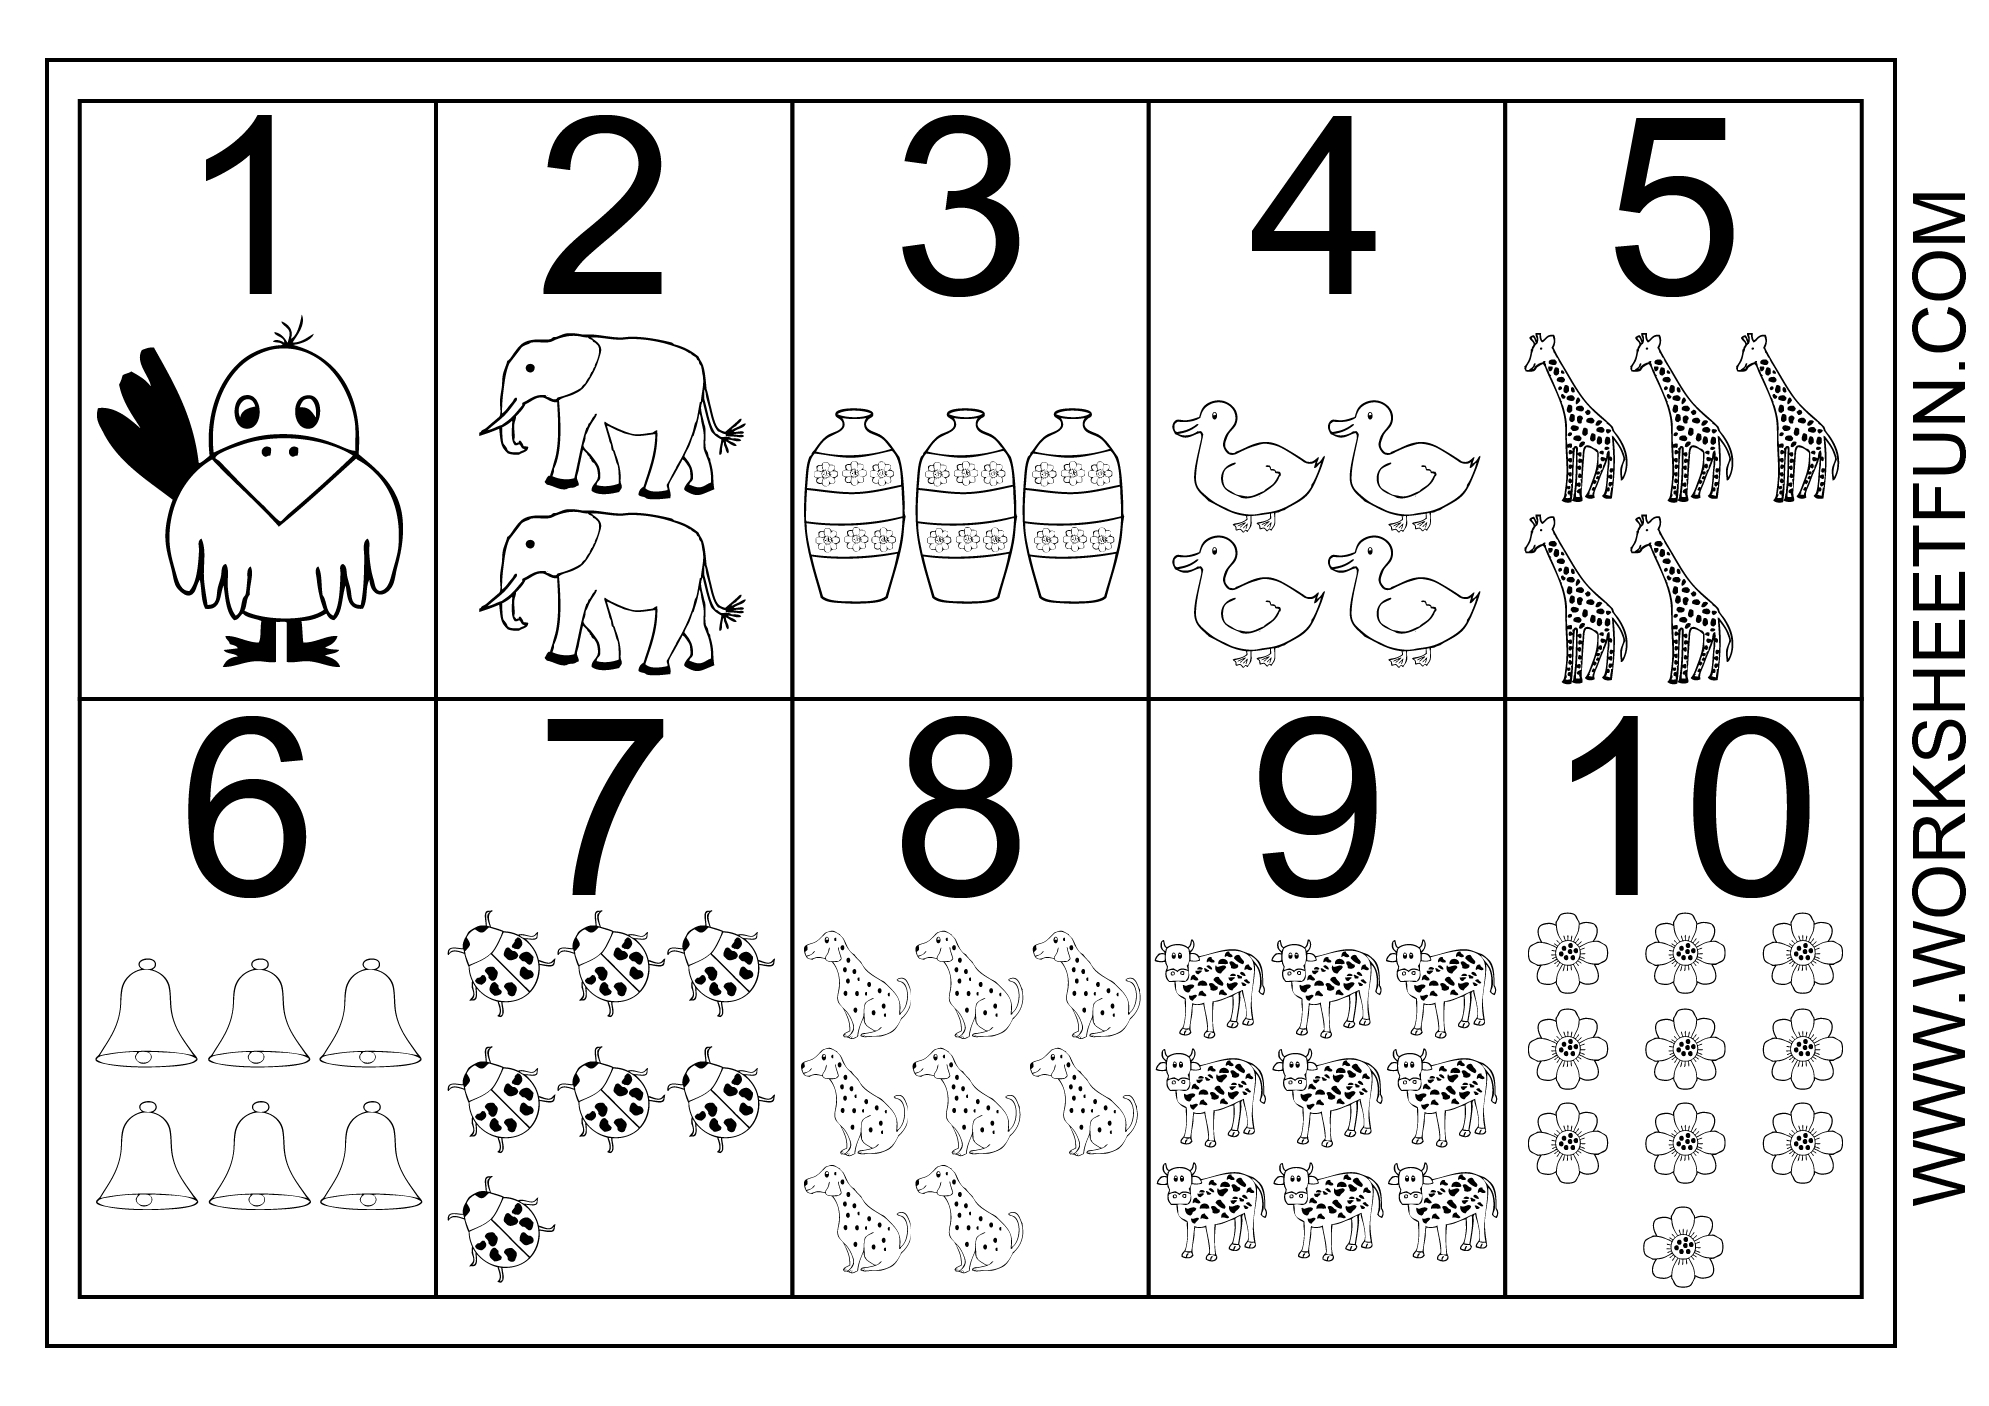 Picture Number Chart 1-10   Printable Worksheets   Numbers Preschool - Free Printable Number Chart 1 10